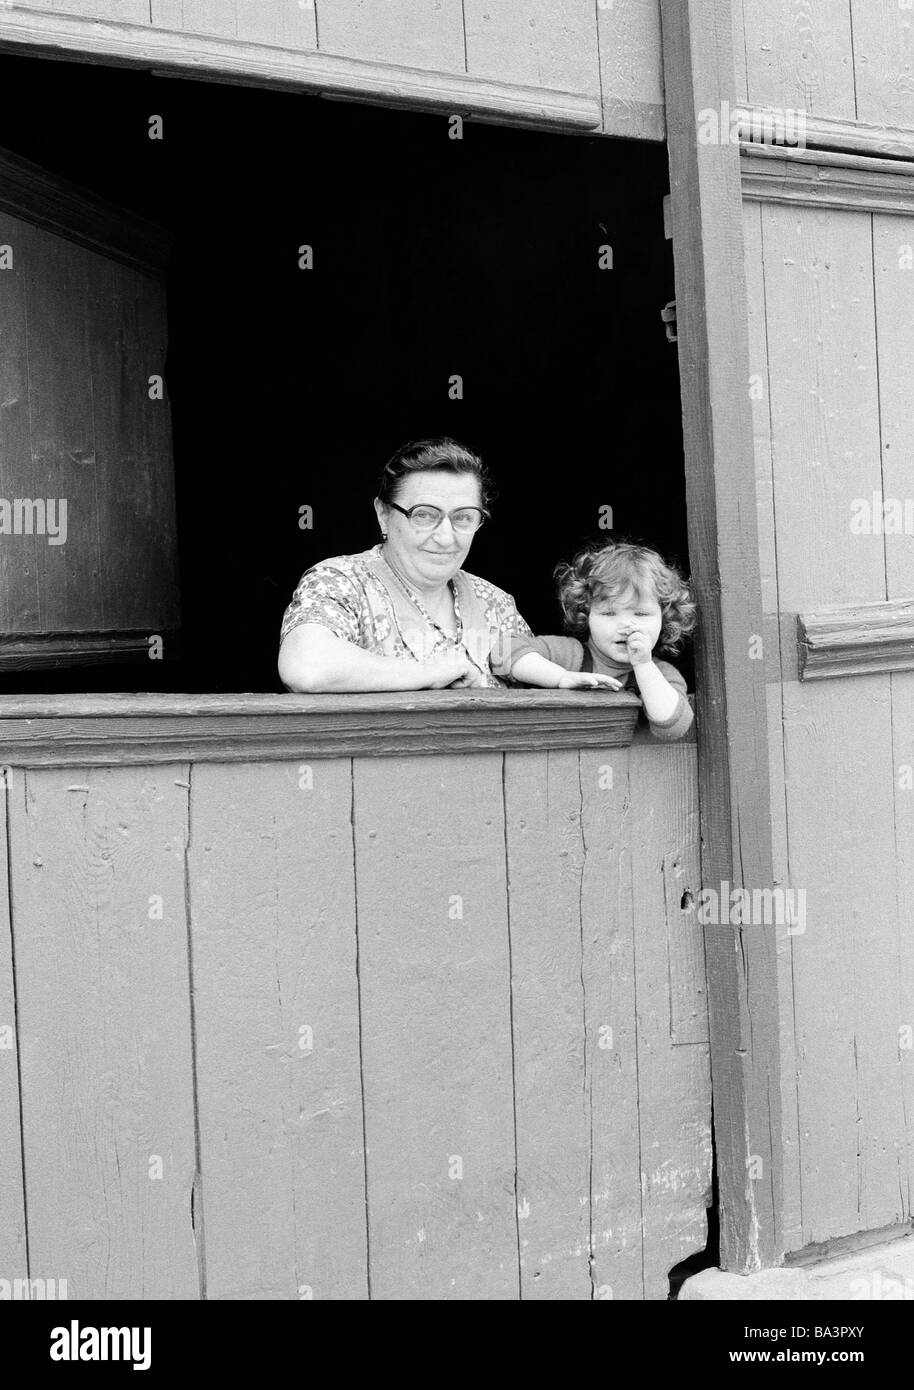 Eighties, black and white photo, people, elder woman and her granddaughter look out of a stable, aged 60 to 70 years, - Stock Image